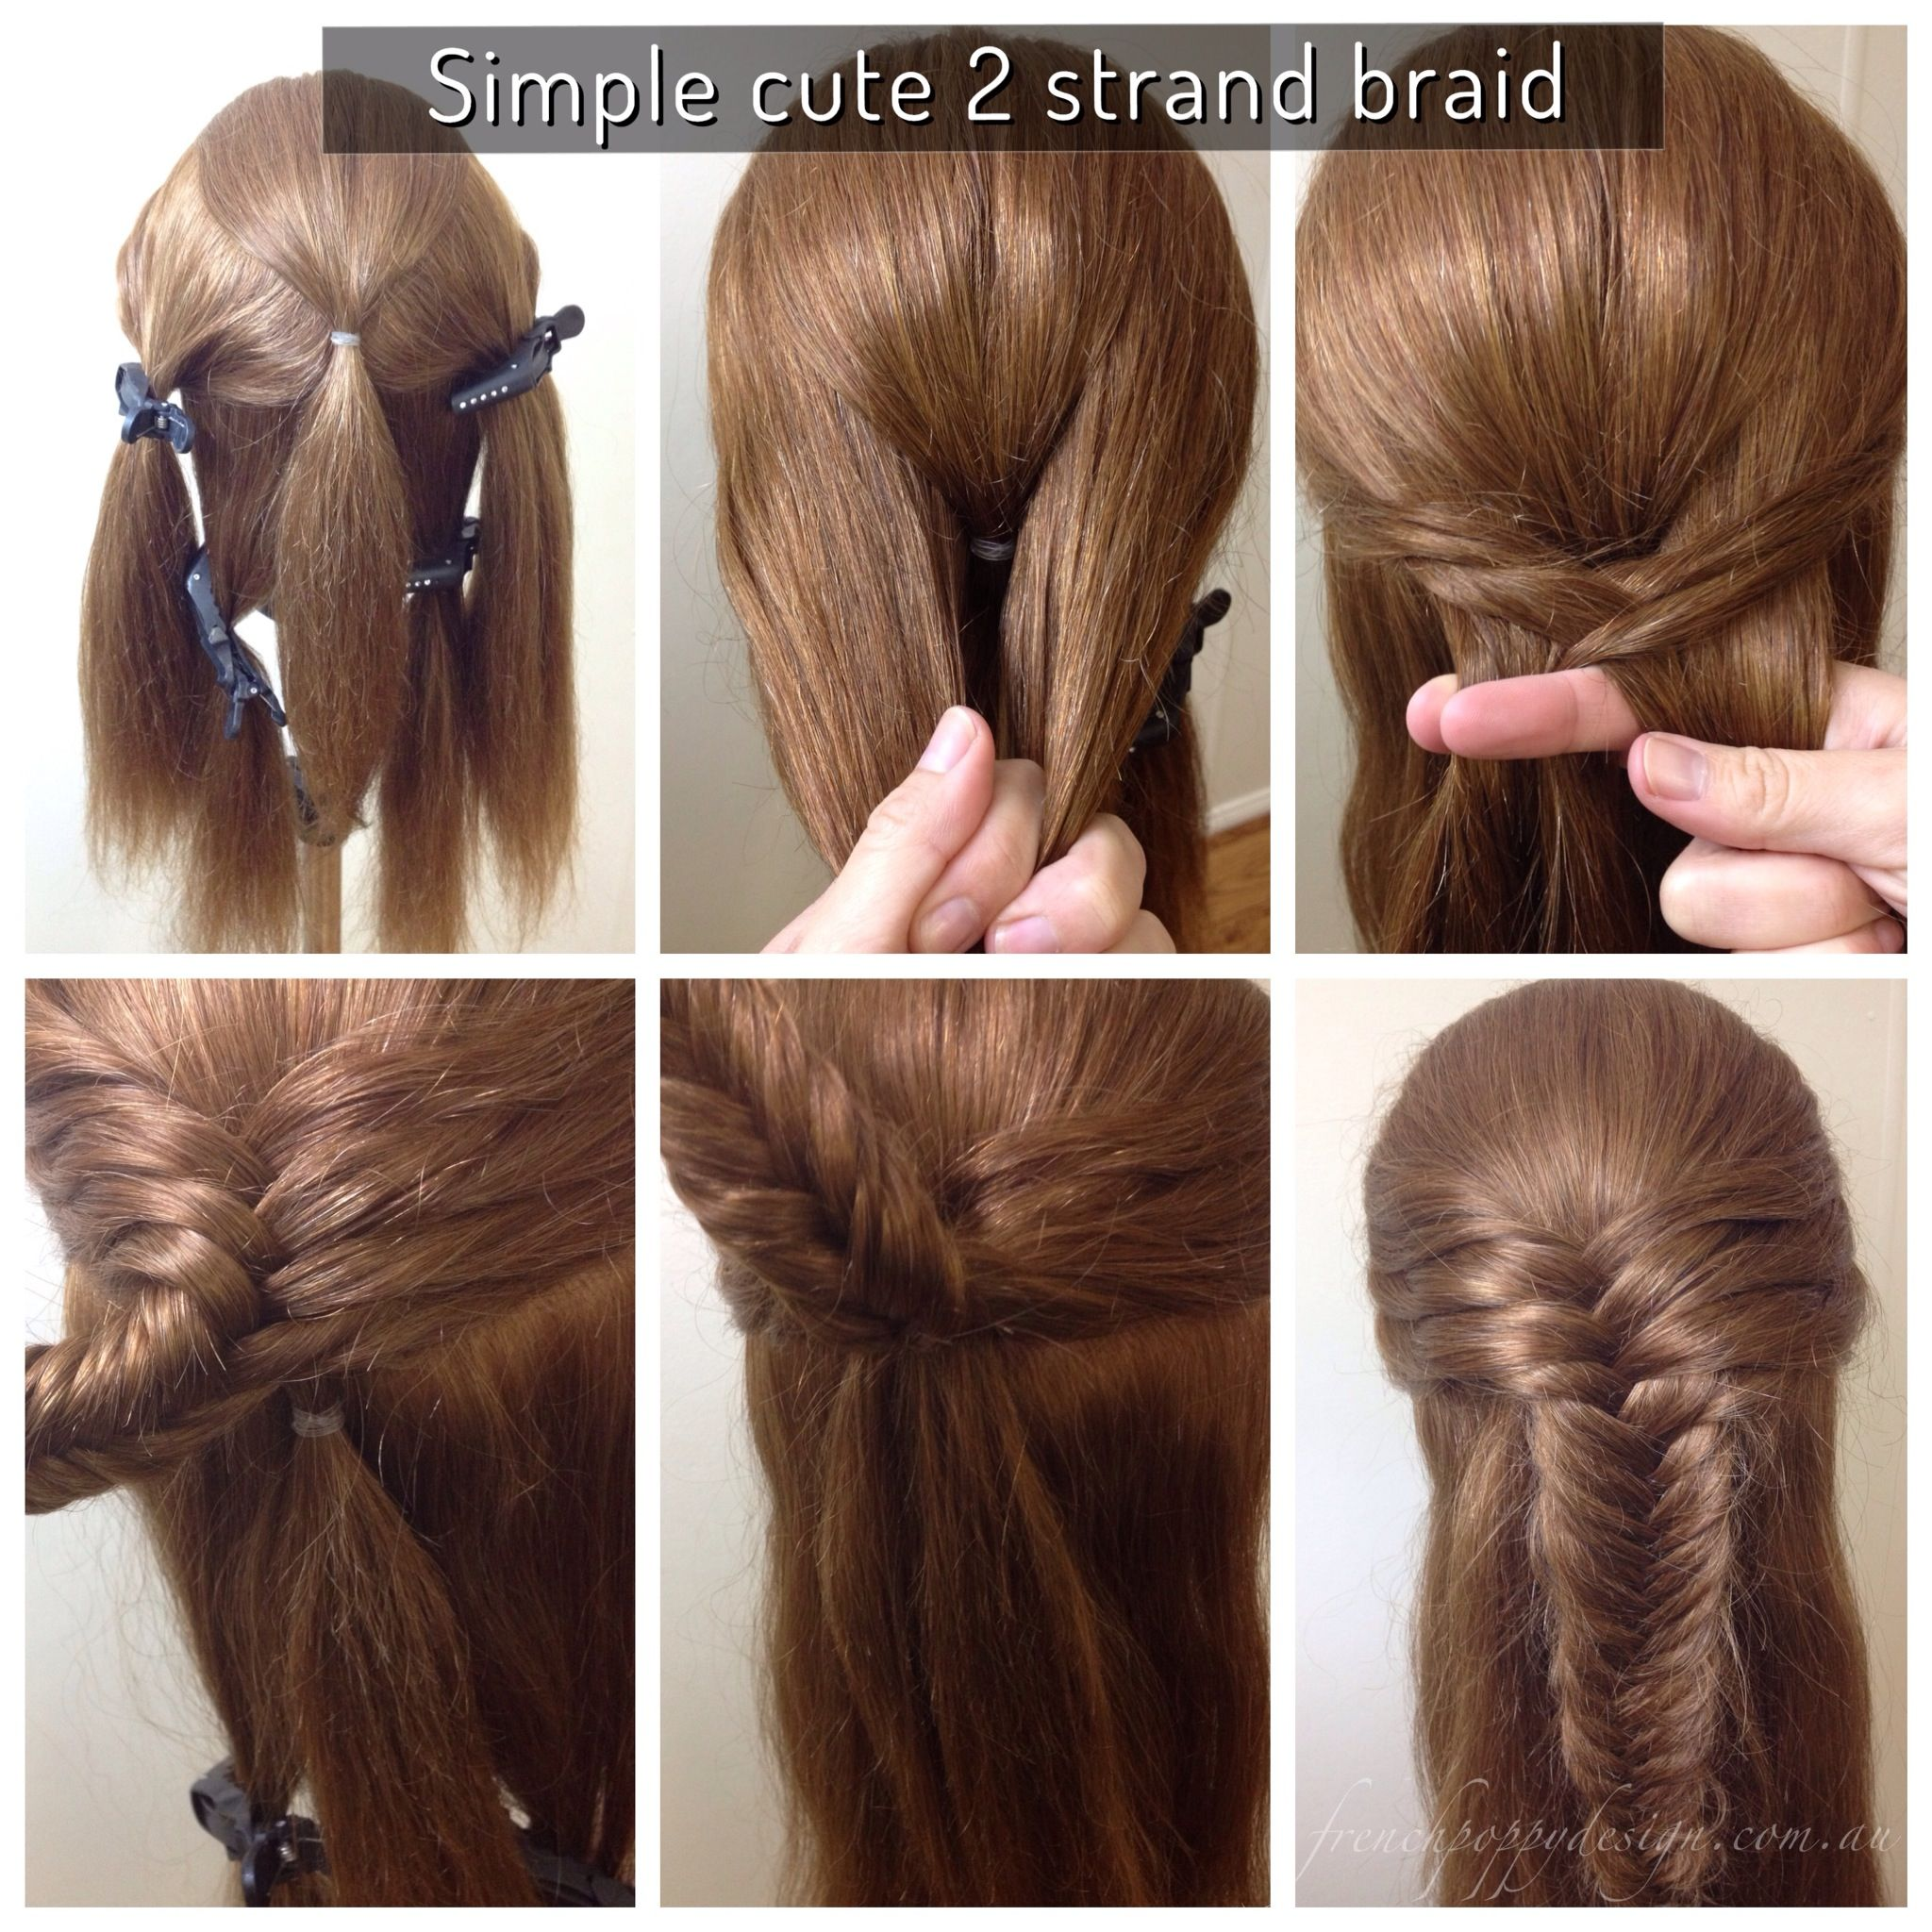 cute and easy hair design created by french poppy design w